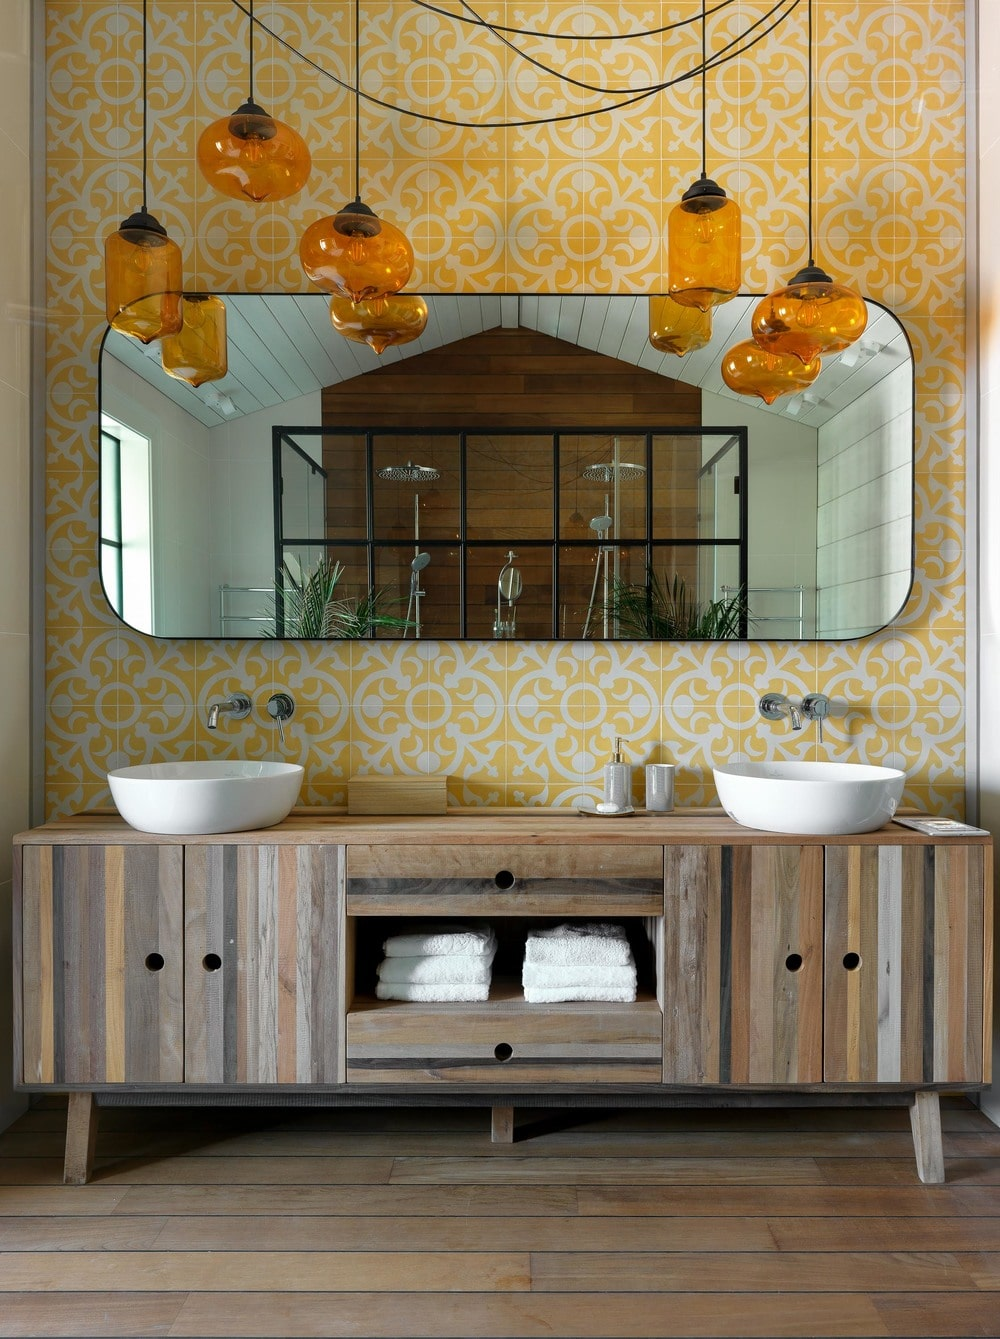 This is the bathroom with a gorgeous vanity area that has two sinks and a large wall mirror. These are then complemented by the patterned yellow tiles of the wall to match the set of lovely yellow pendant lights.